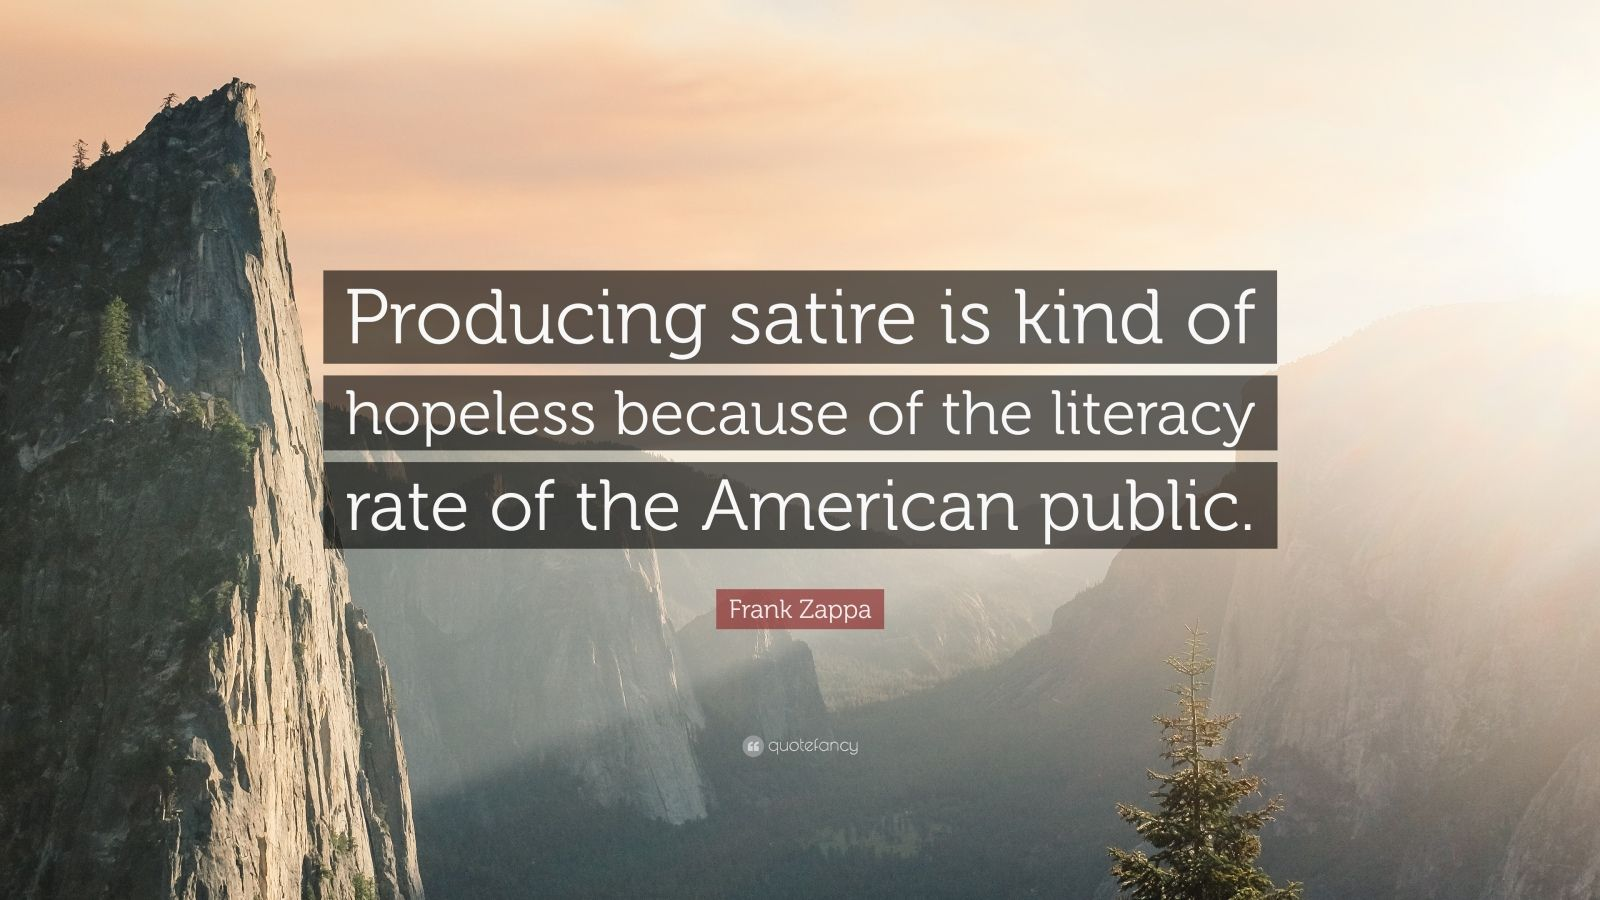 """Frank Zappa Quote: """"Producing satire is kind of hopeless because of the literacy rate of the American public."""""""